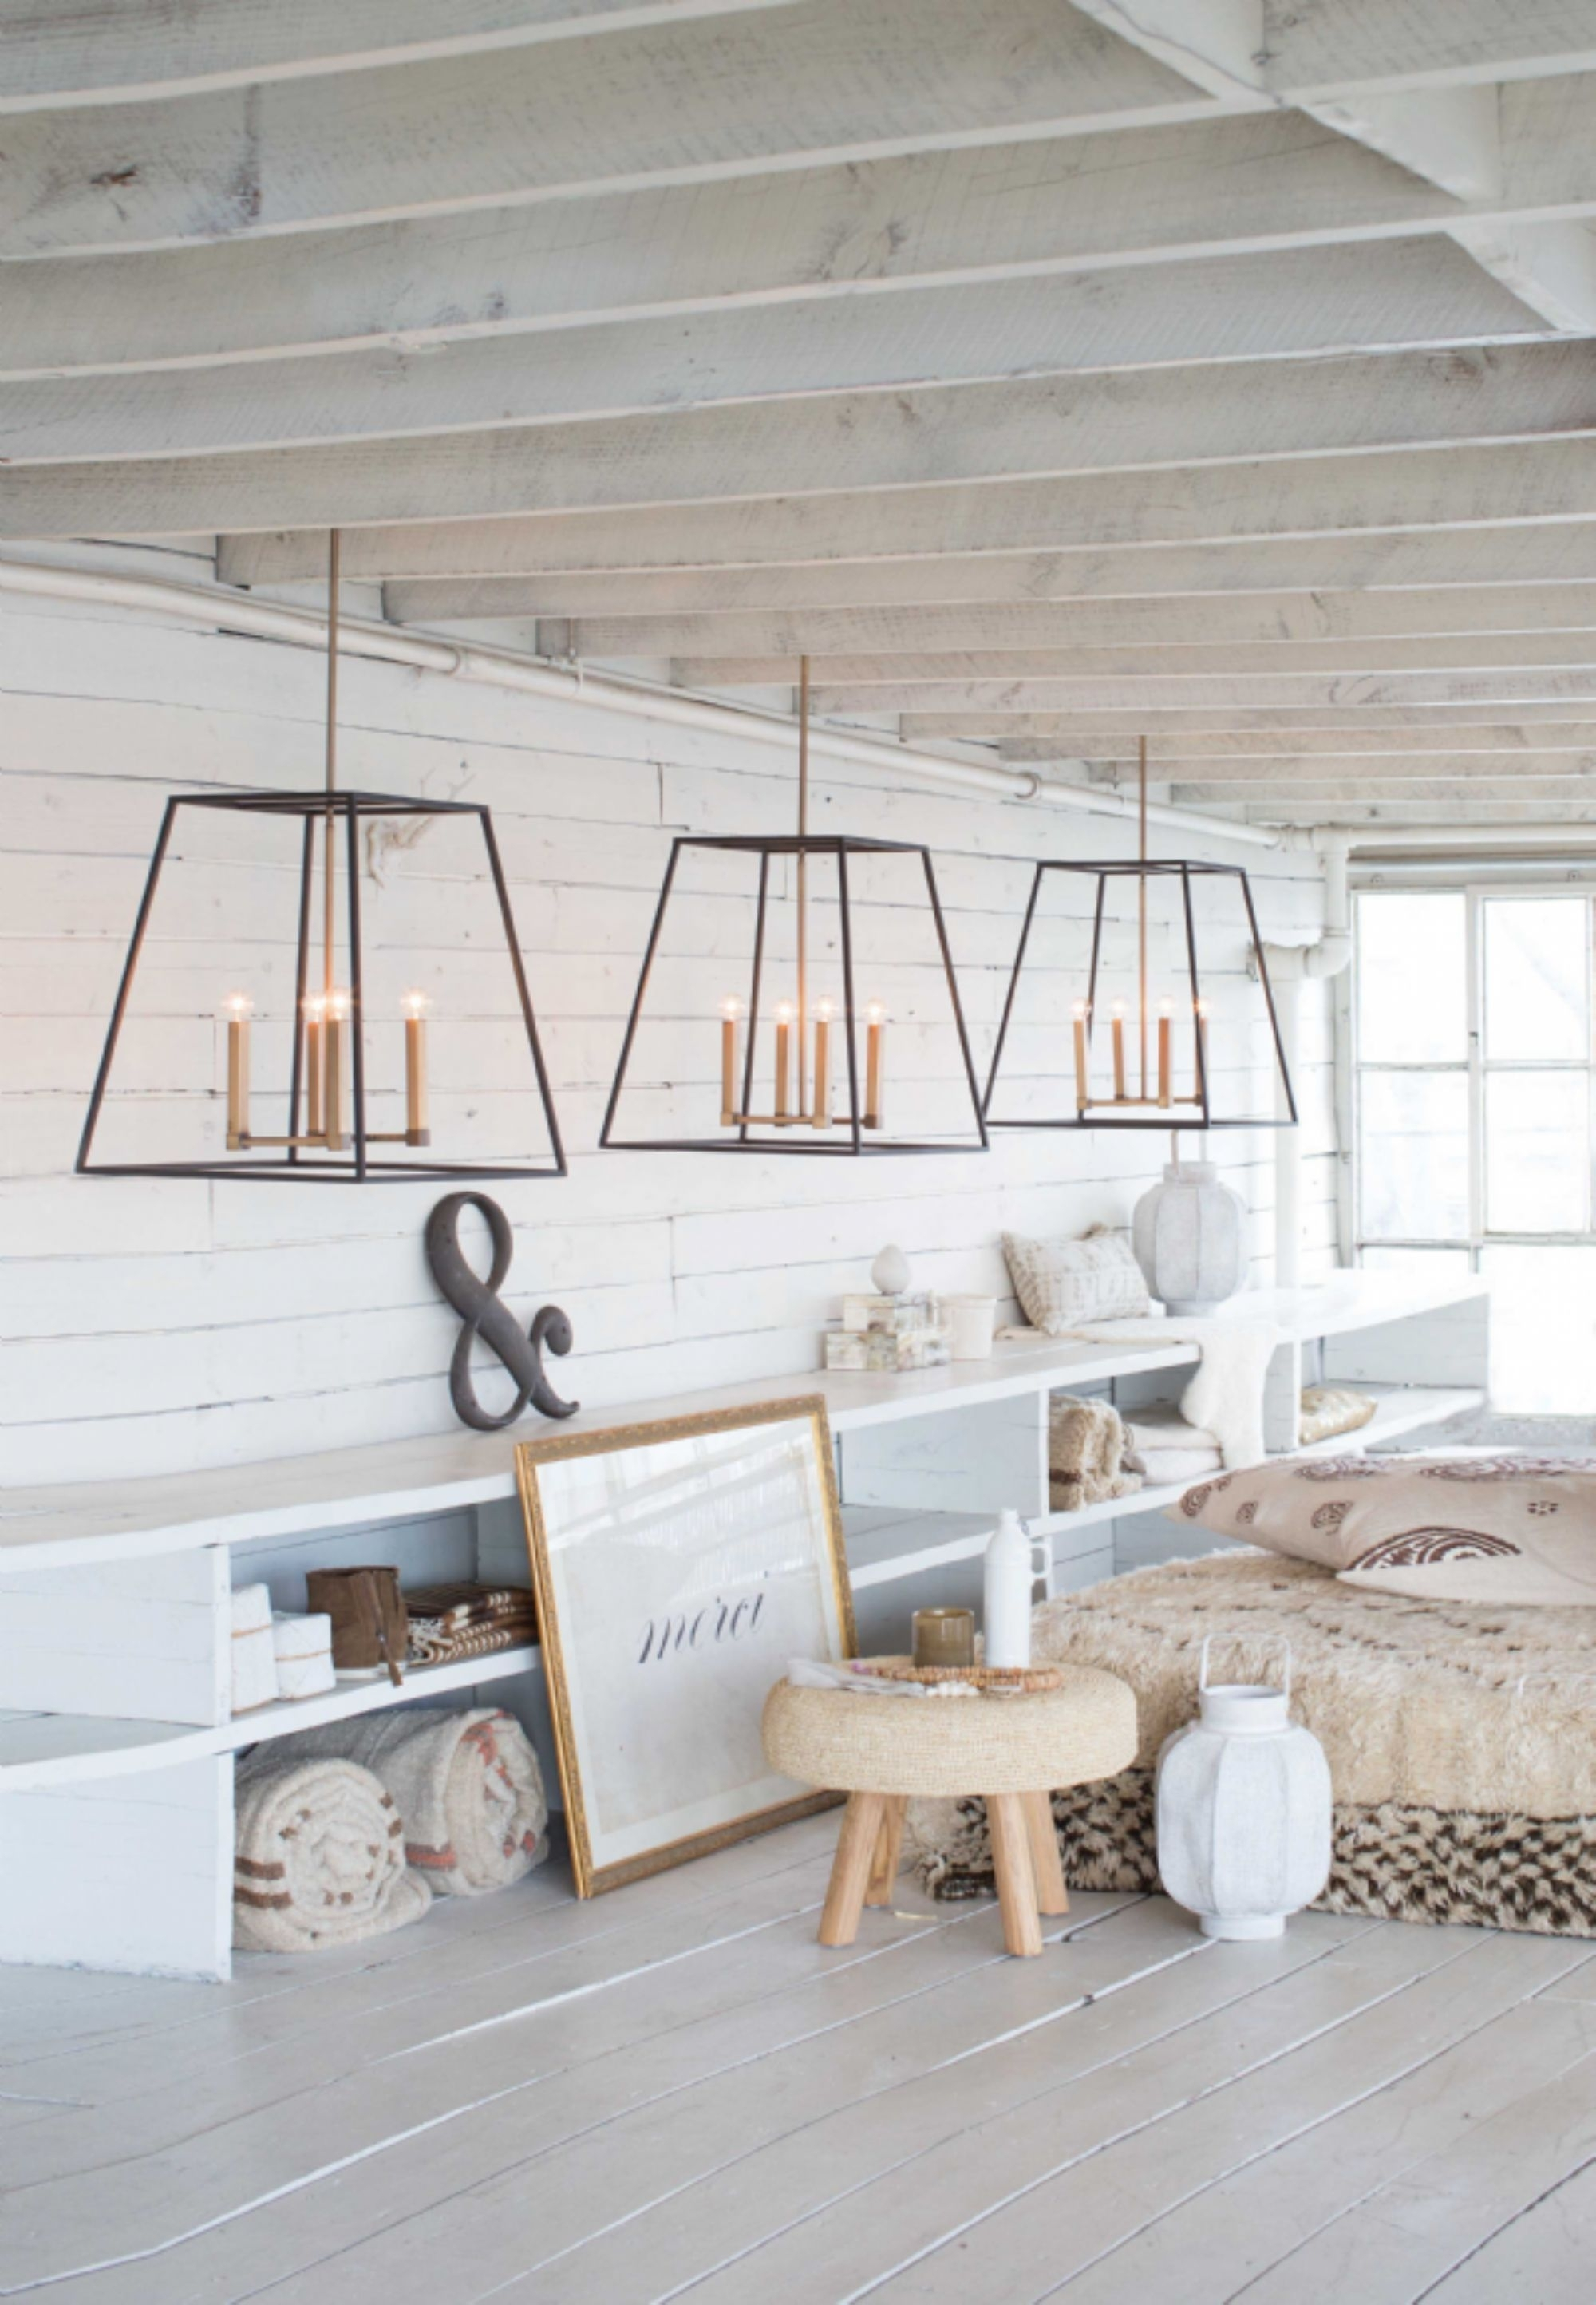 Hinkley Lighting Fulton Collection Pendants | Hinkley Lighting Intended For Contemporary Hanging Porch Hinkley Lighting (View 13 of 15)